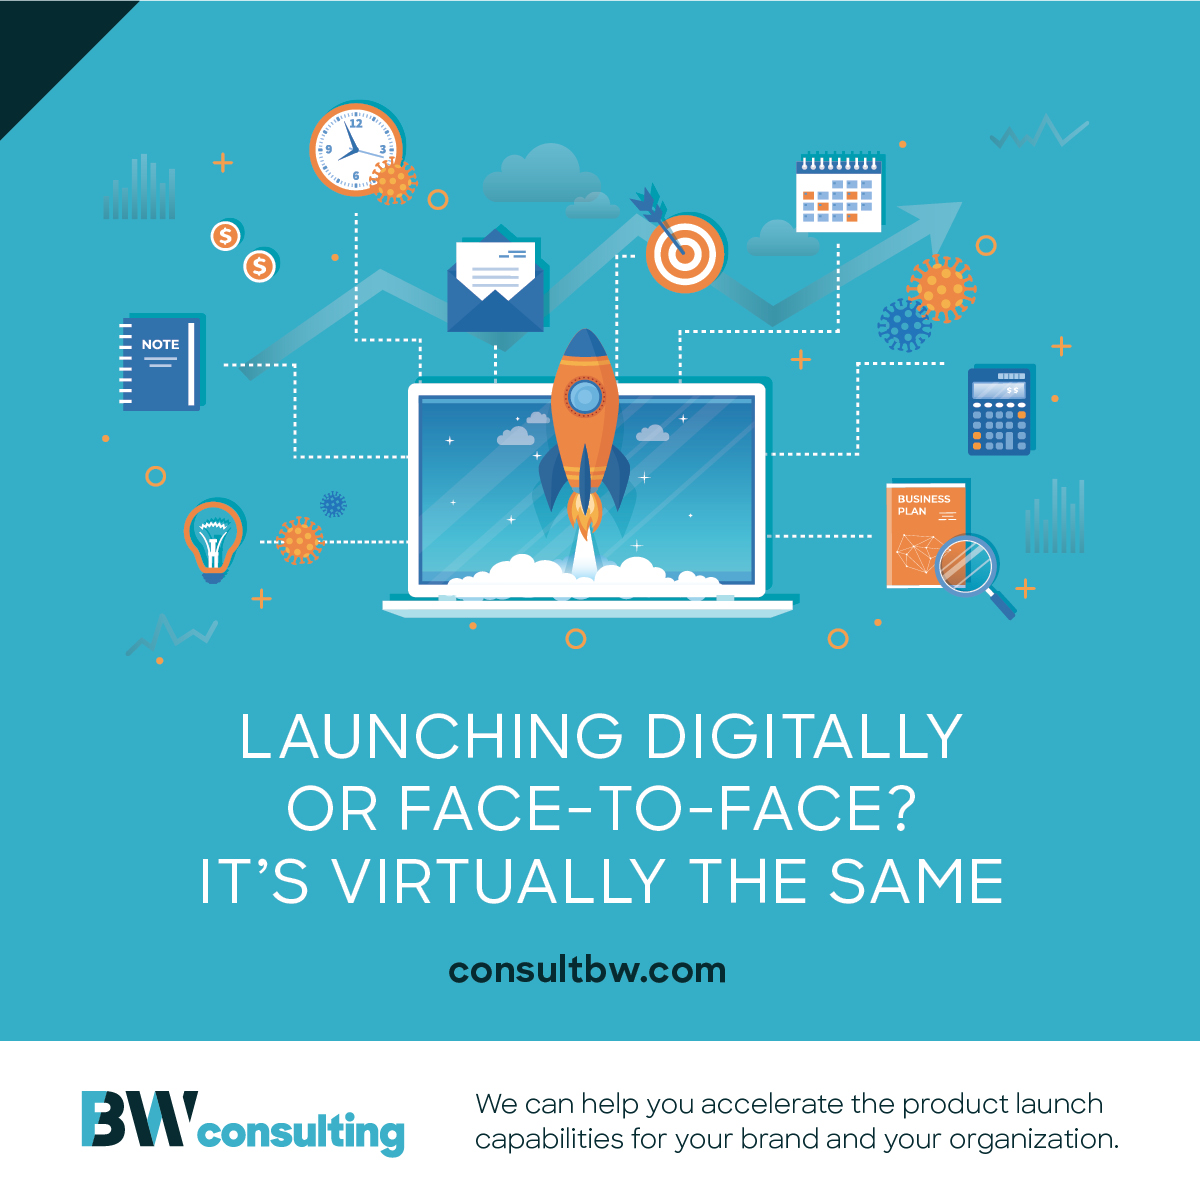 Launching Digitally or Face-to-Face? It's Virtually the Same